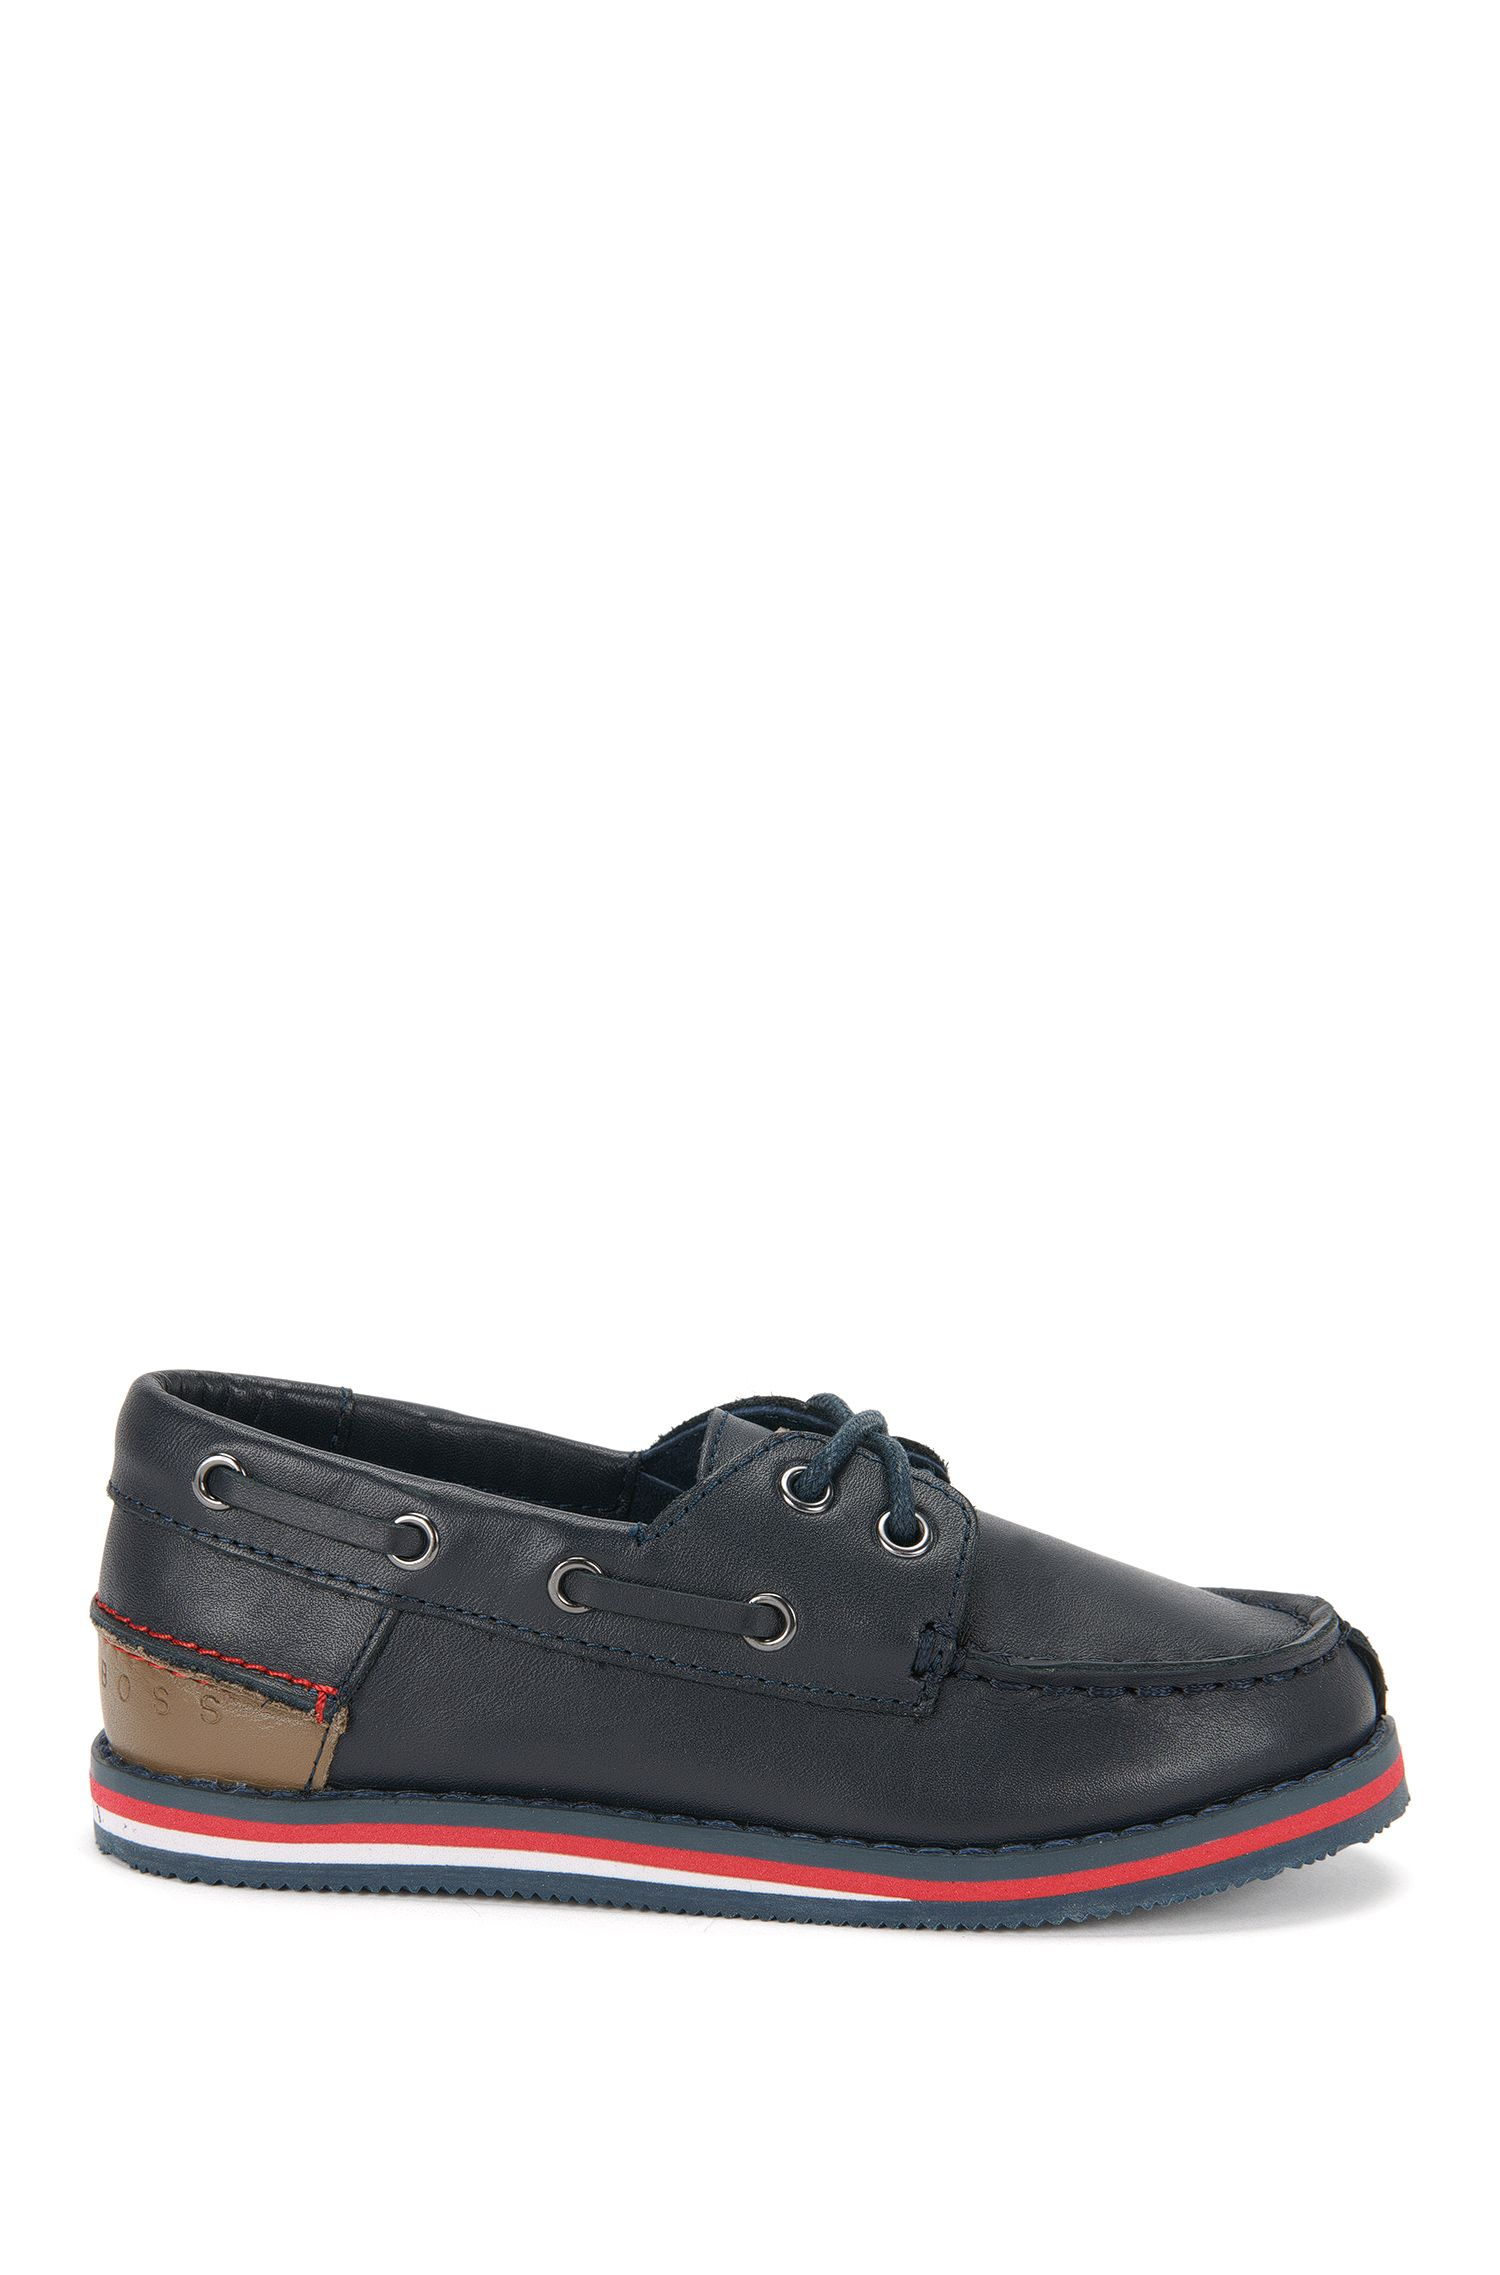 Kids' boat shoes in leather: 'J29116'